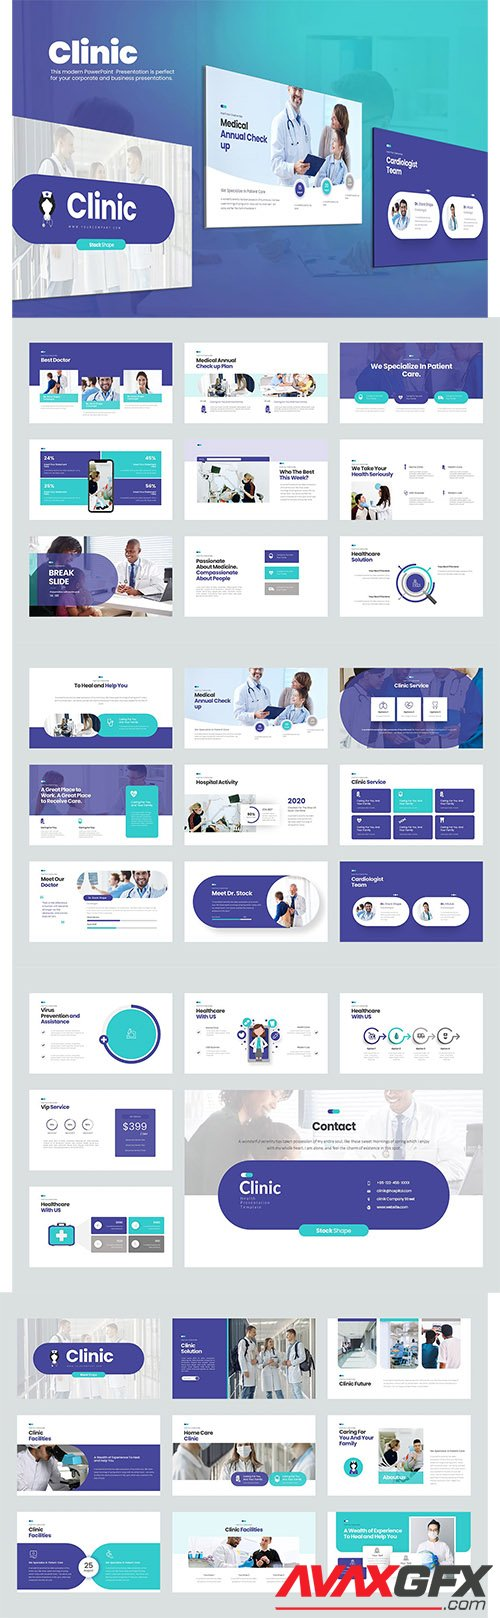 Clinic PowerPoint, Keynote, Google Slides Presentations